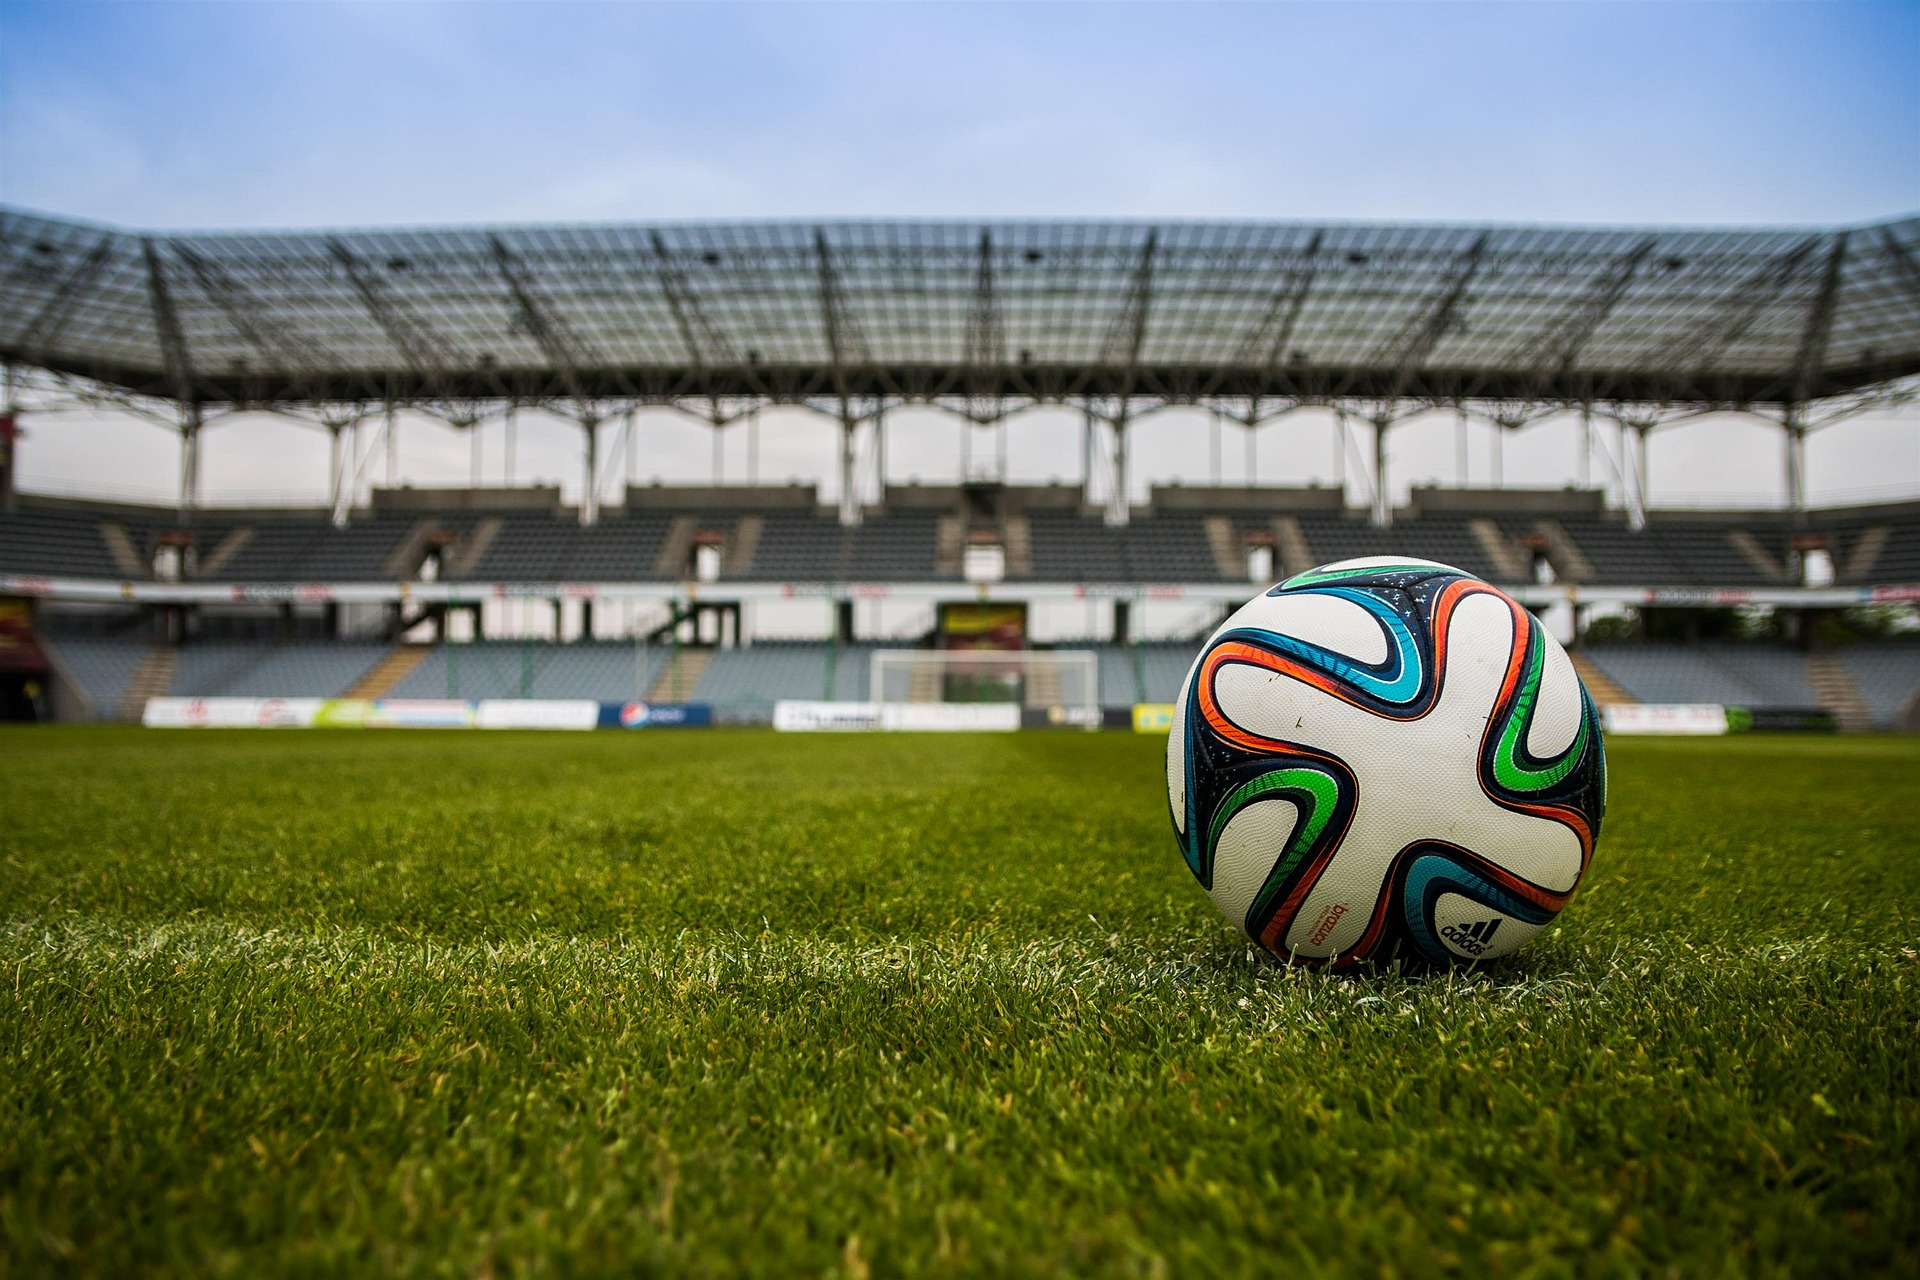 Tonight is gonna be best football match